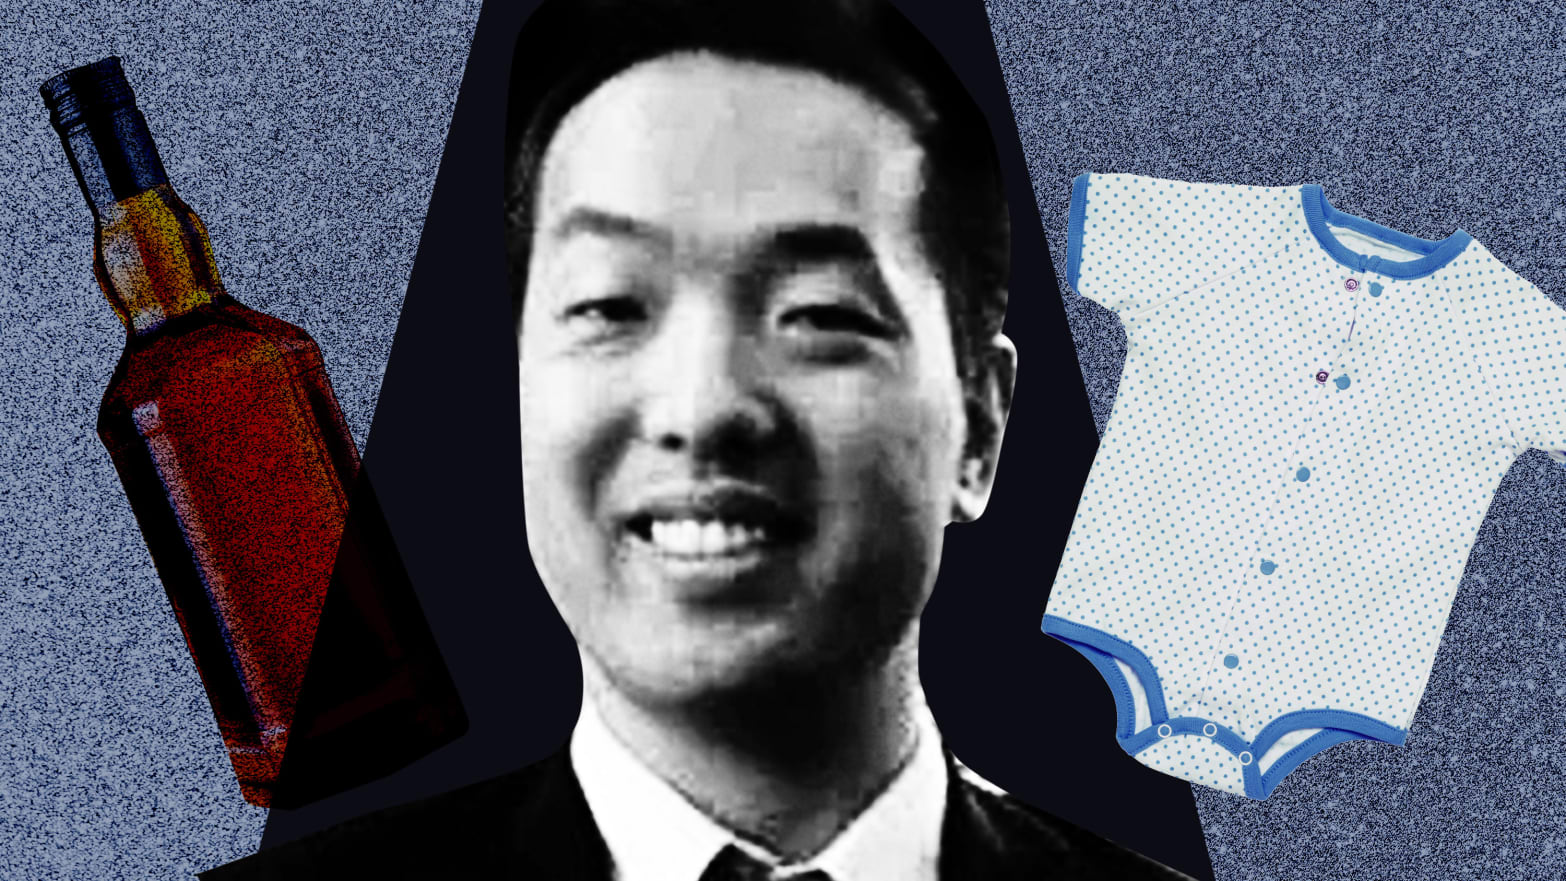 Why Was U.S. Scholar David An Getting Booze and Baby Clothes From Taiwanese Spies?